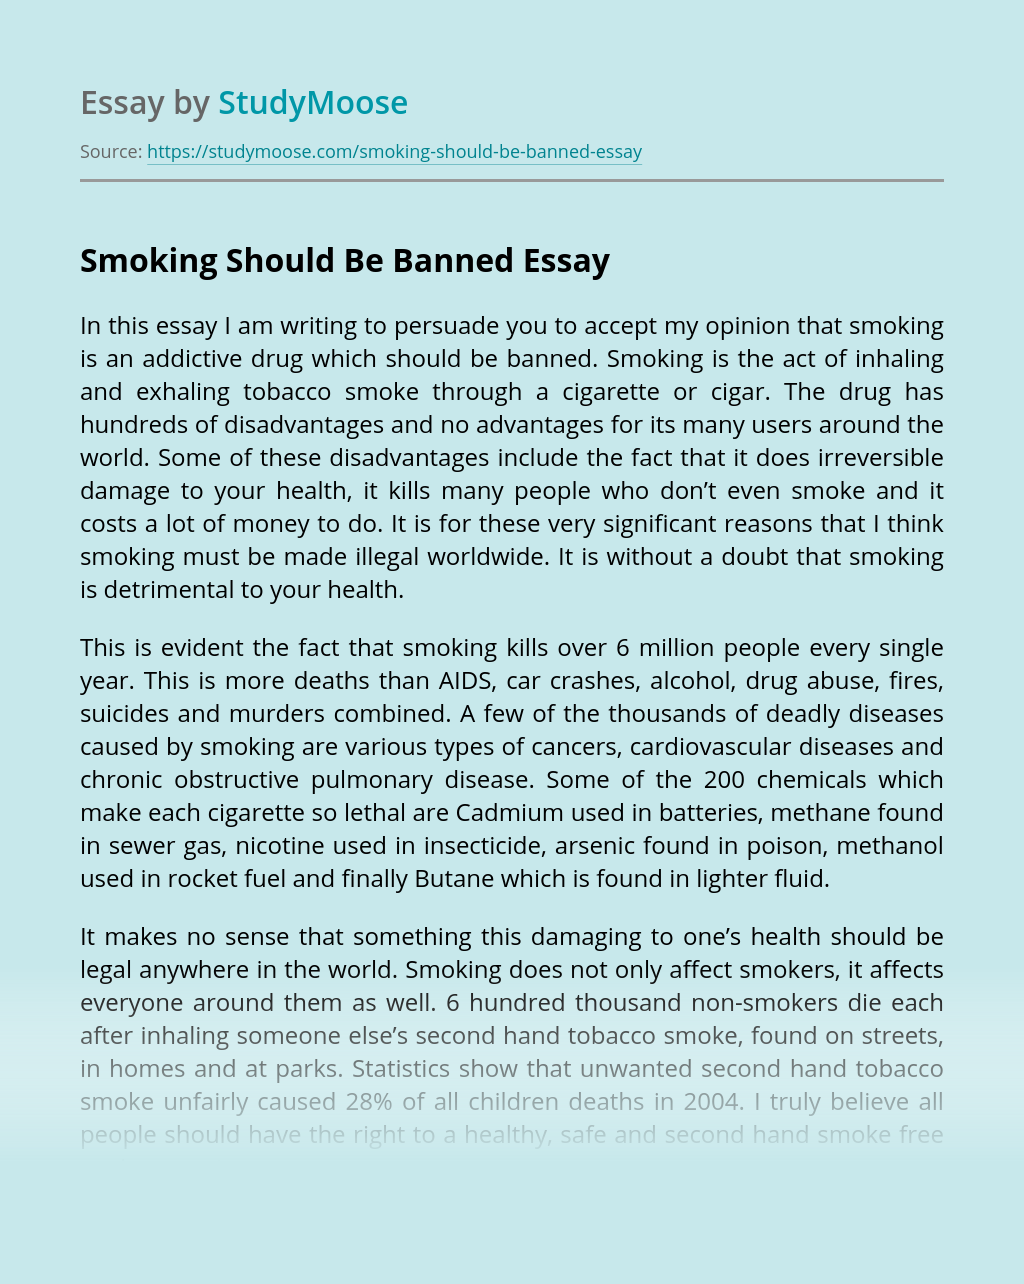 Smoking Should Be Banned